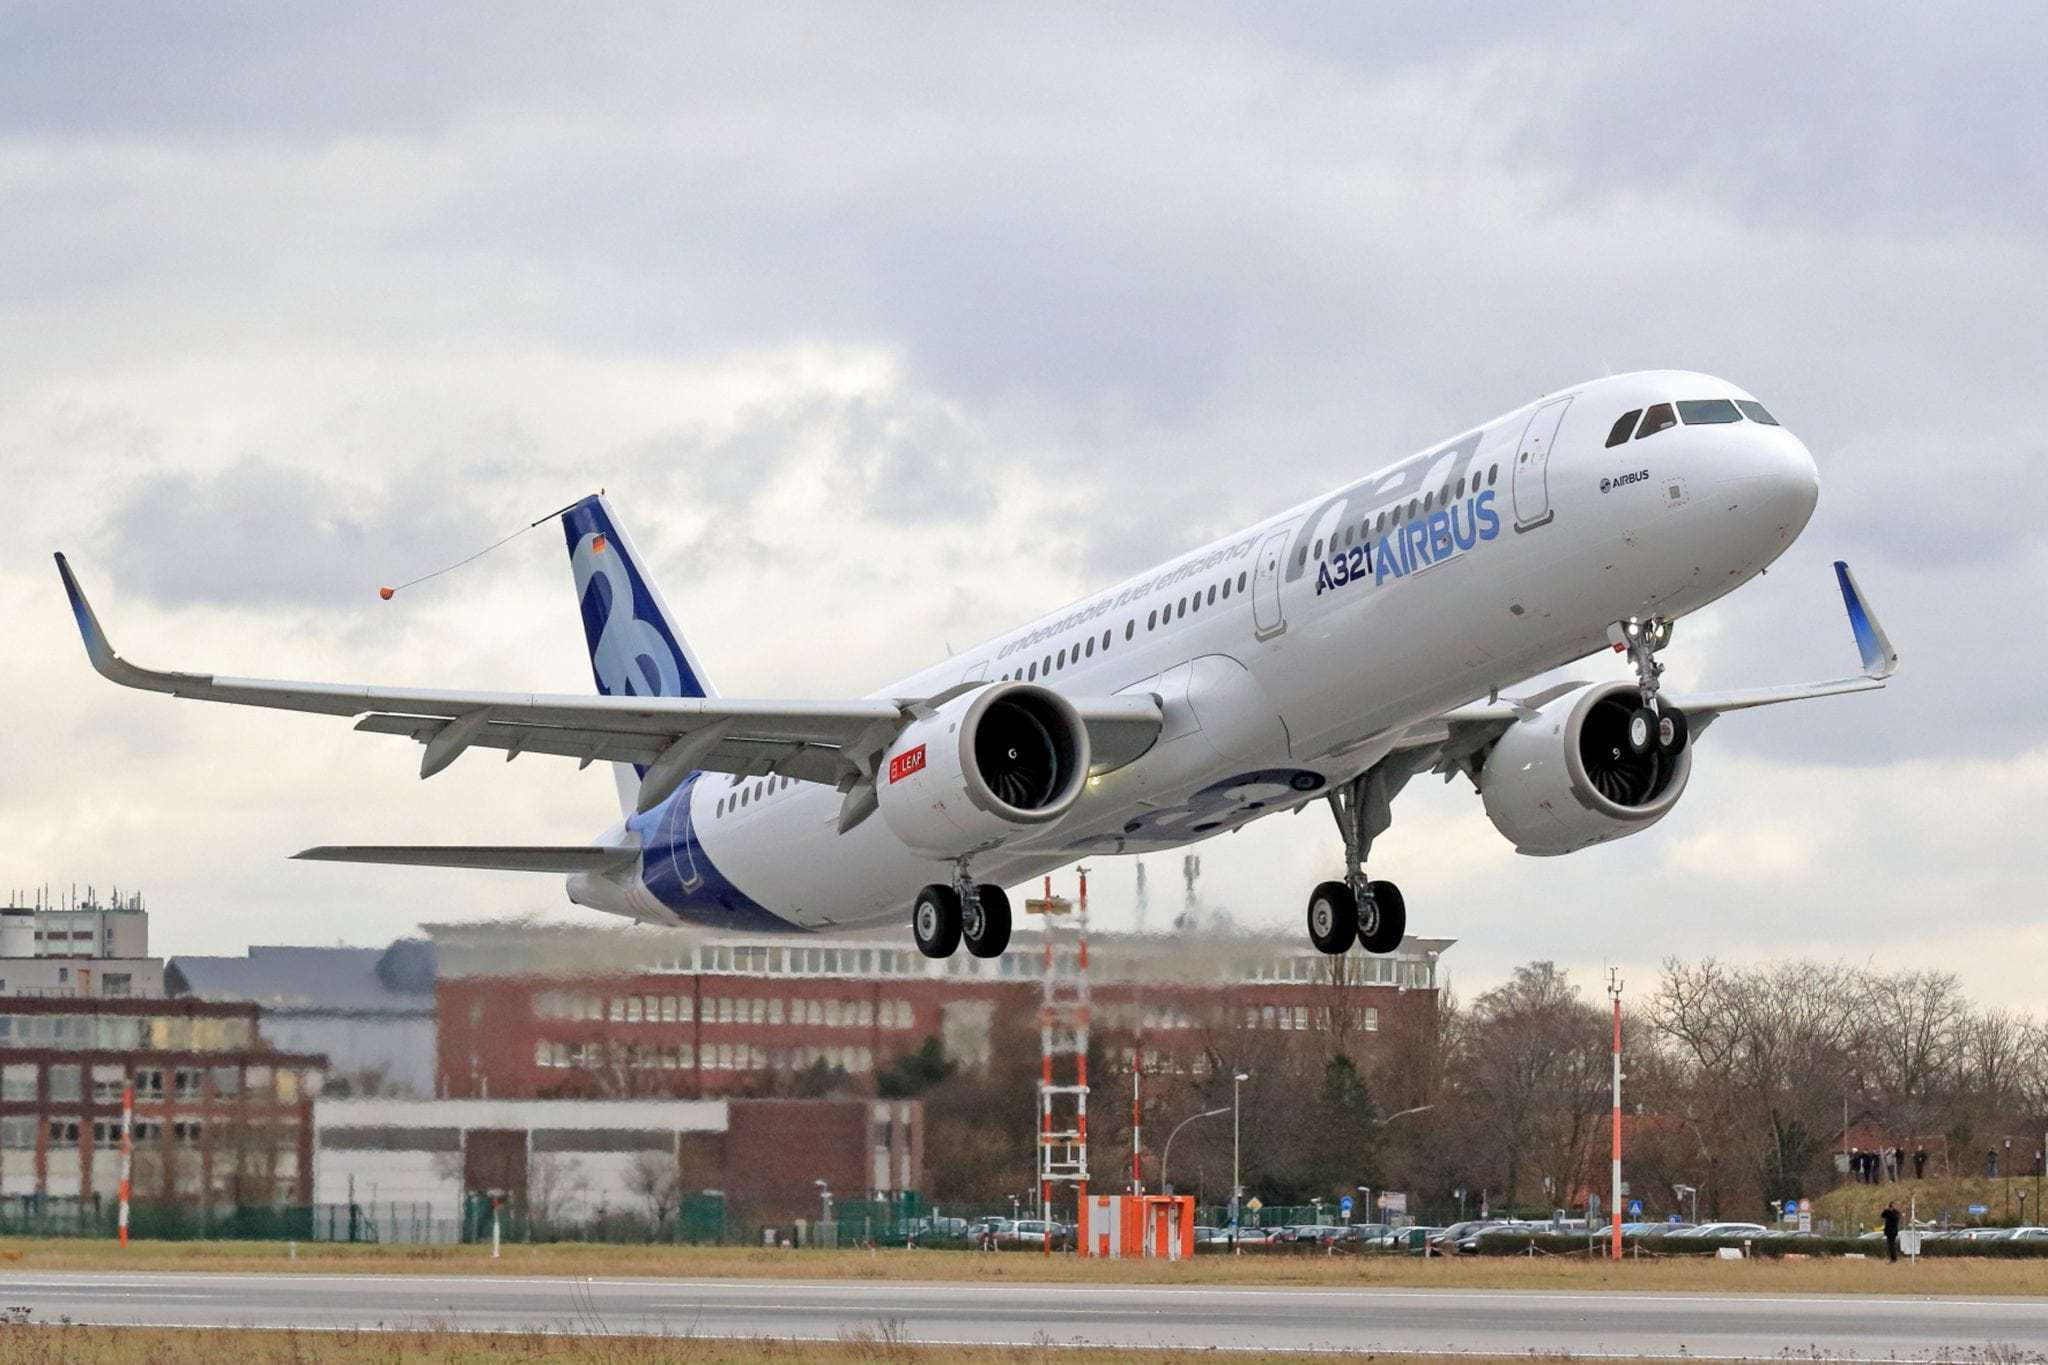 The maiden flight of Airbus' first A320neo equipped with CFM International LEAP-1A engines, which was performed Feb. 9, 2016